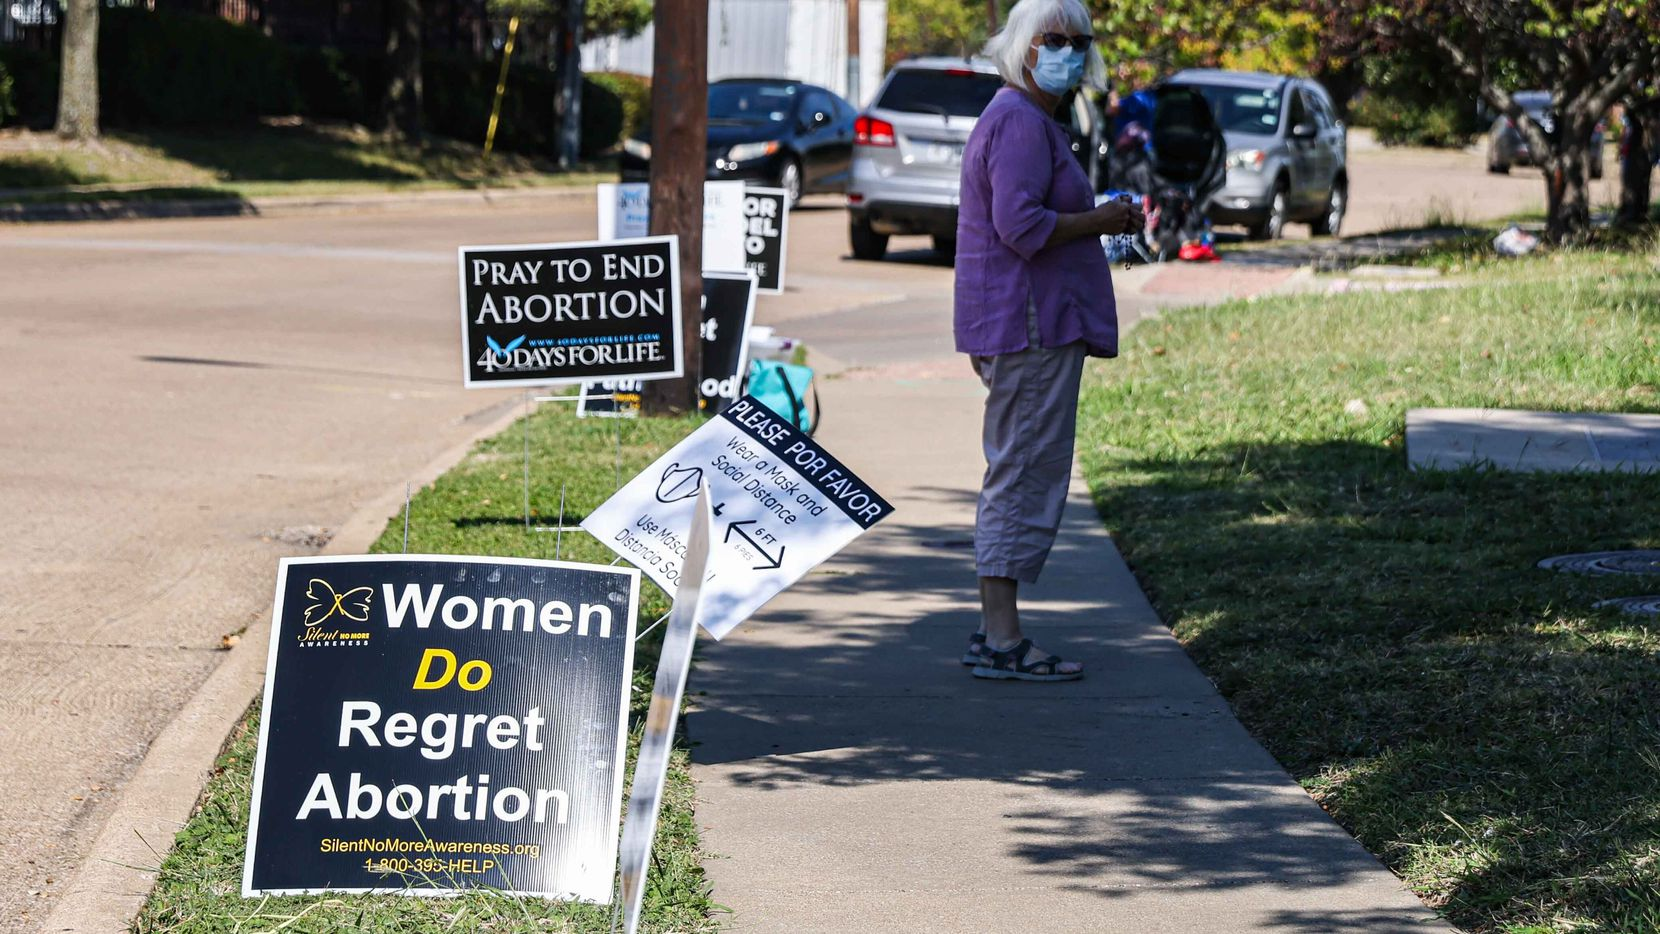 A protester stands on the sidewalk near Planned Parenthood next to anti-abortion signs in Dallas on Thursday.